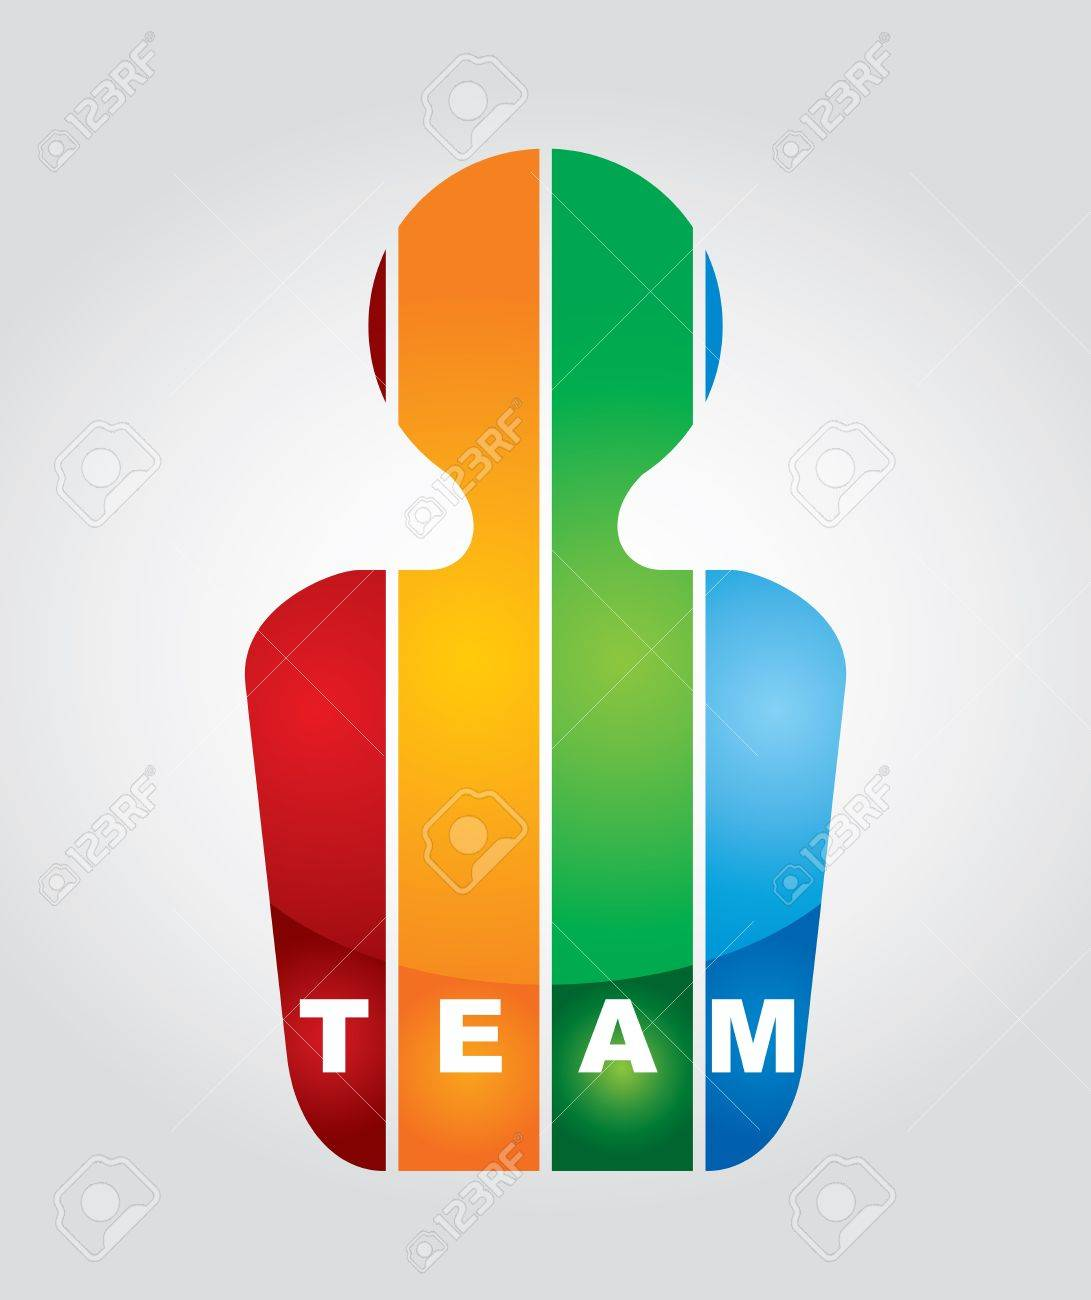 Team - communication concept with text and color figures Stock Vector - 16258919